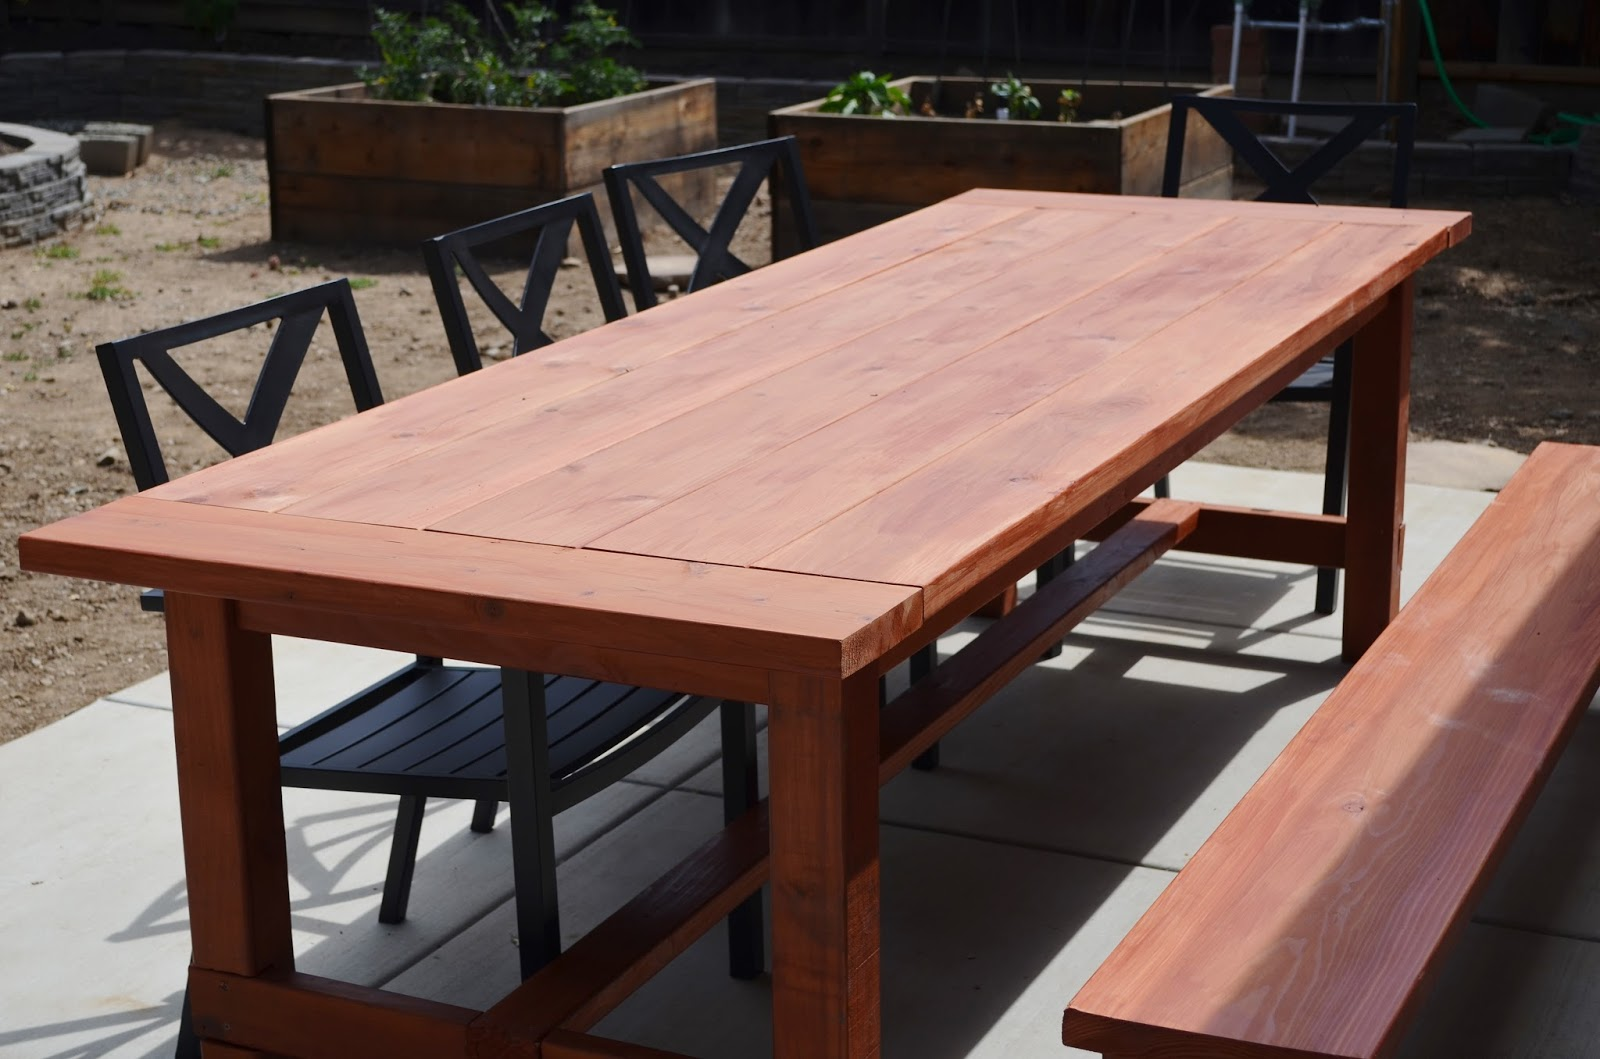 Snugglebug University: Farmhouse Patio Table and Bench